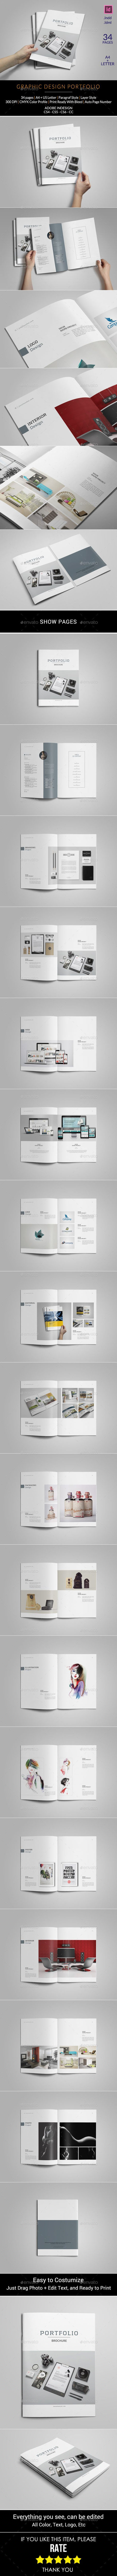 Portfolio Brochure Template InDesign INDD #design Download: http://graphicriver.net/item/portfolio-template/13084867?ref=ksioks